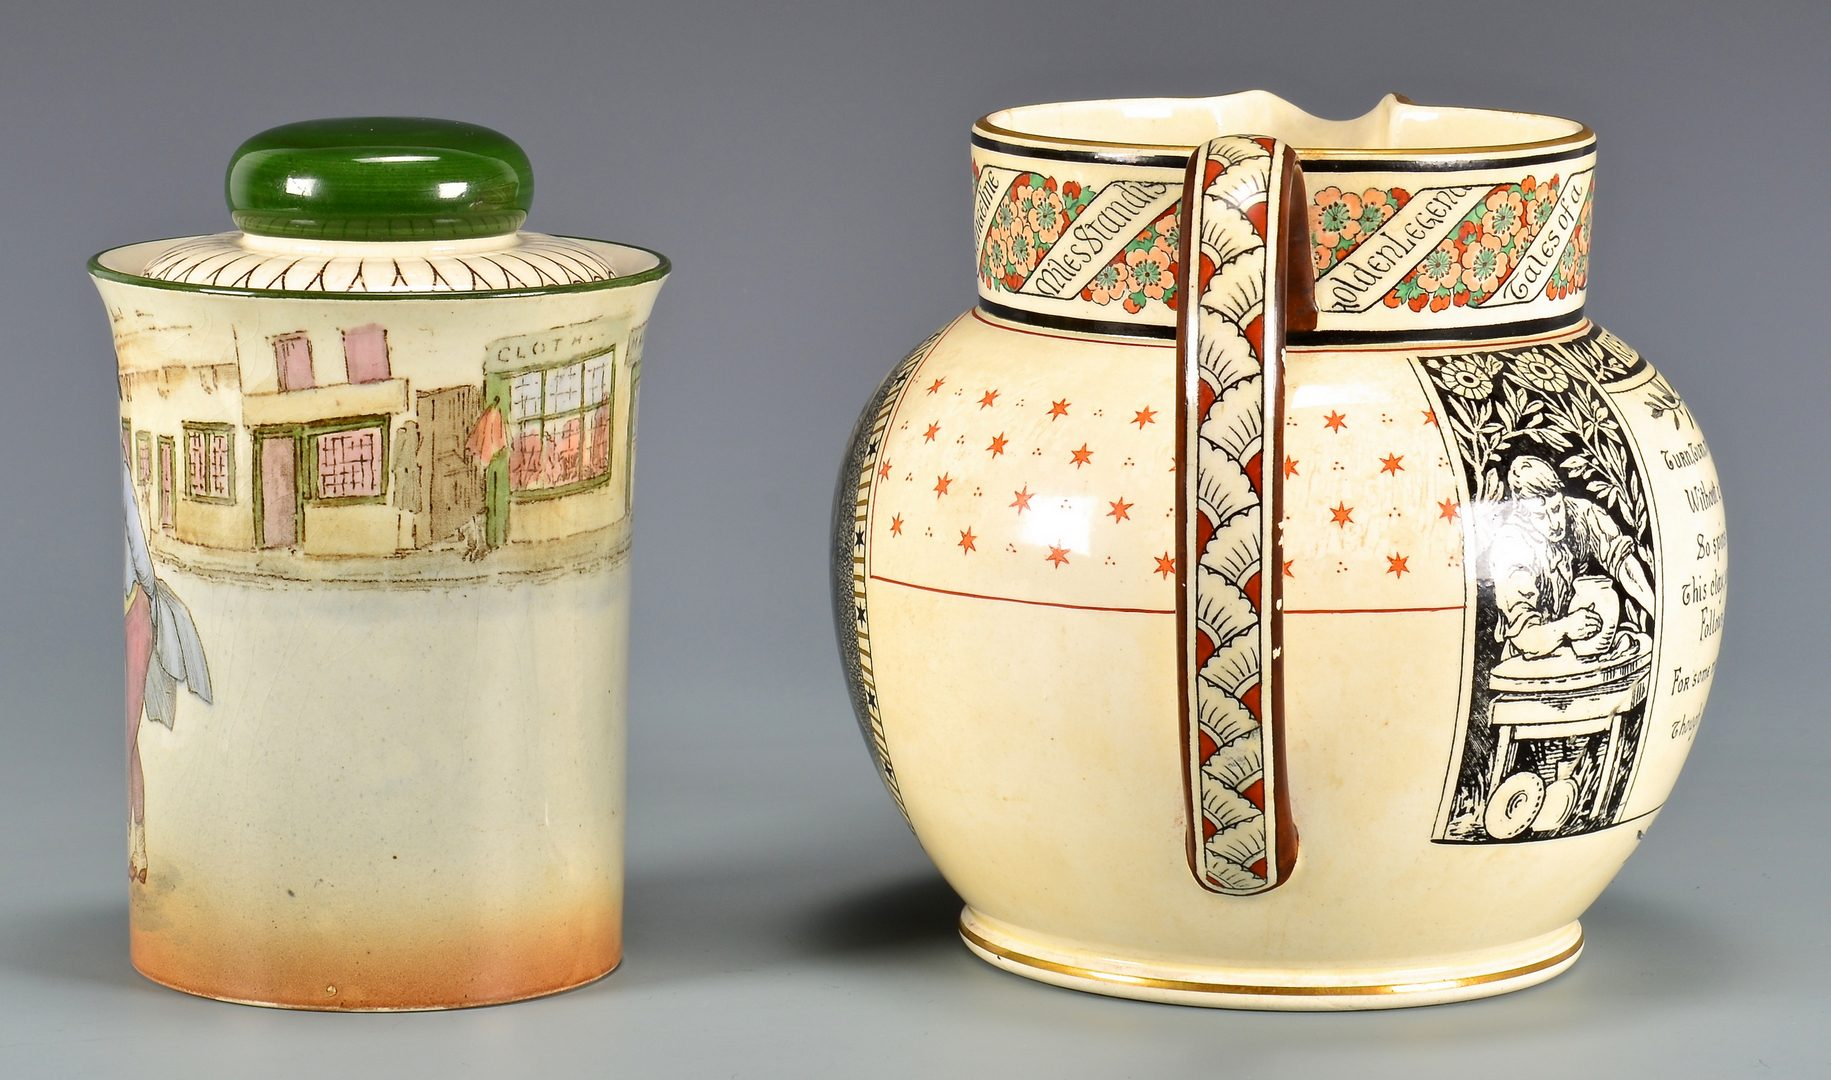 Lot 83: Staffordshire Pitcher, Pickwick Humidor